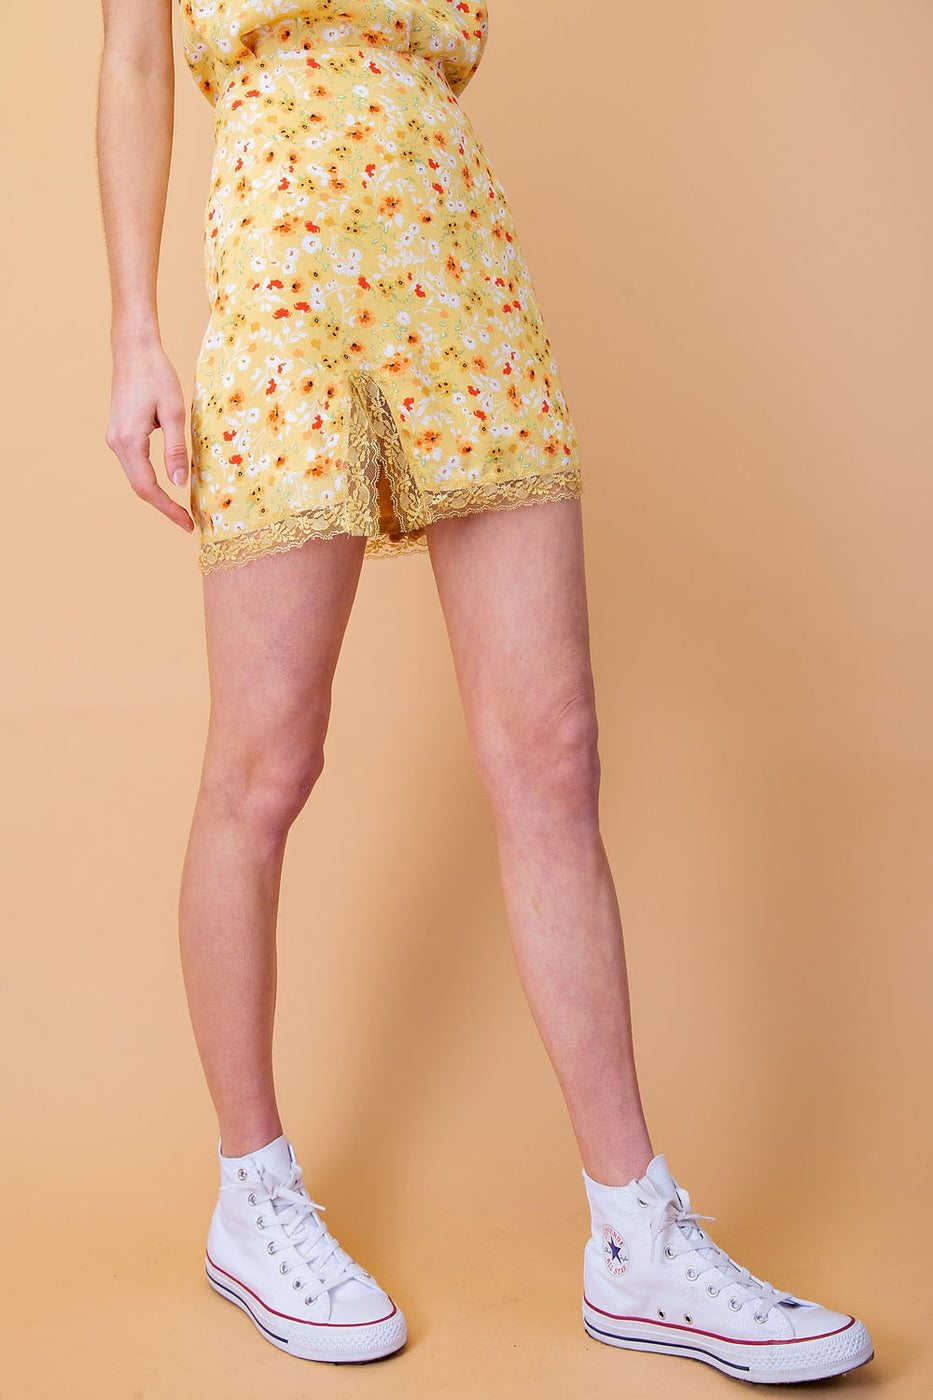 Lace Trim Slit Skirt In Yellow Multi Siin Bees